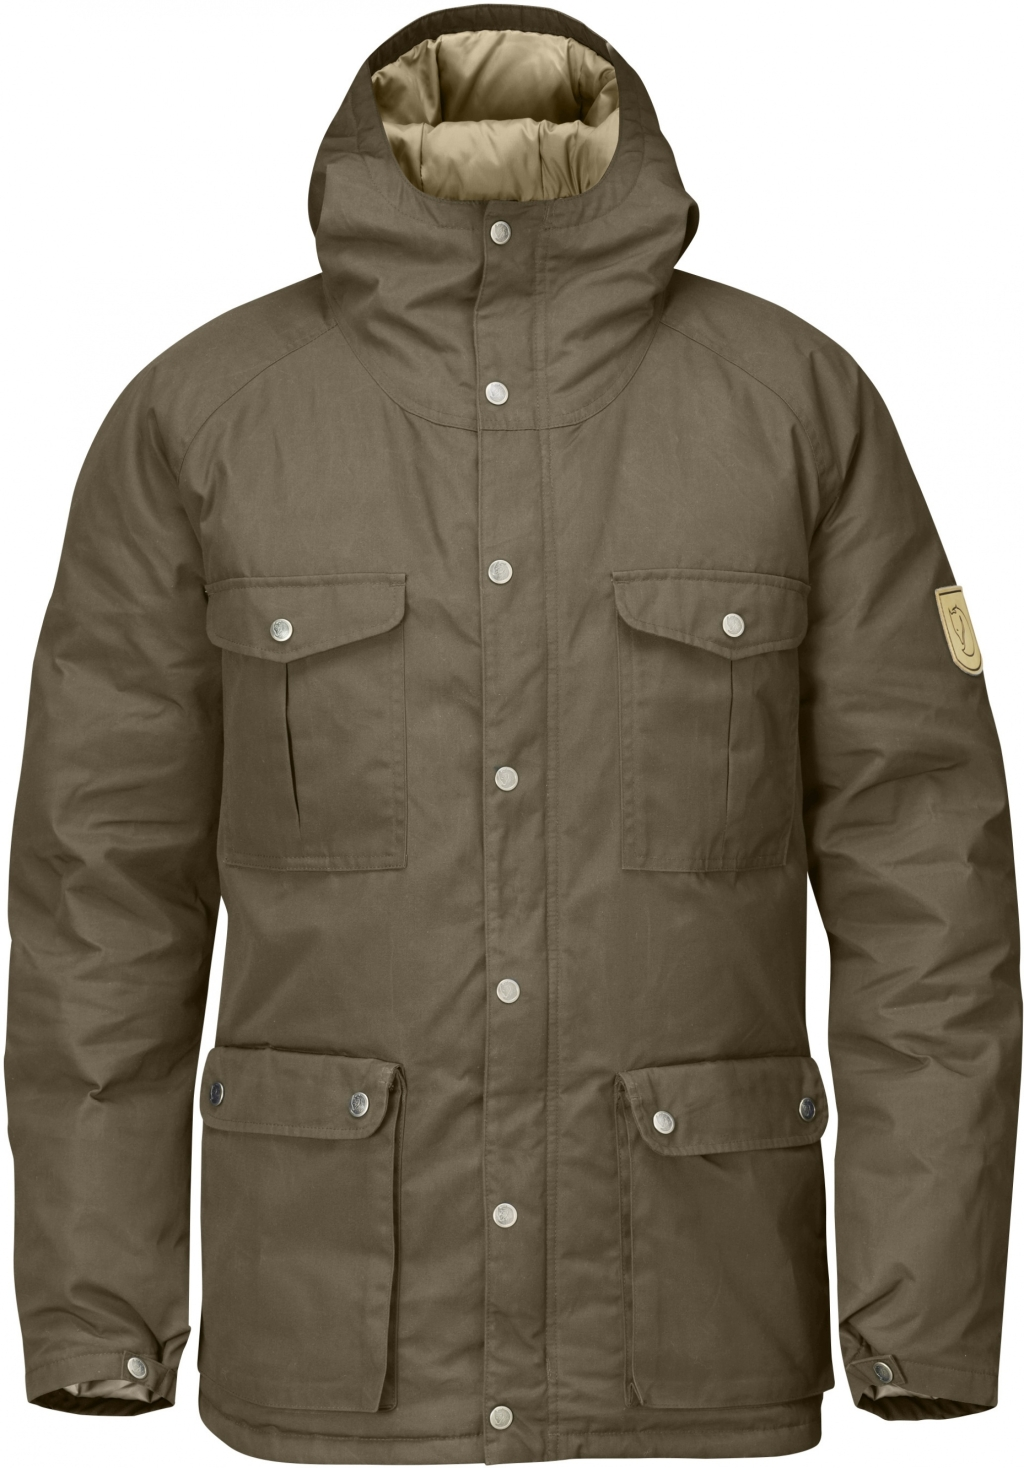 FjallRaven Greenland Down Jacket Taupe-30